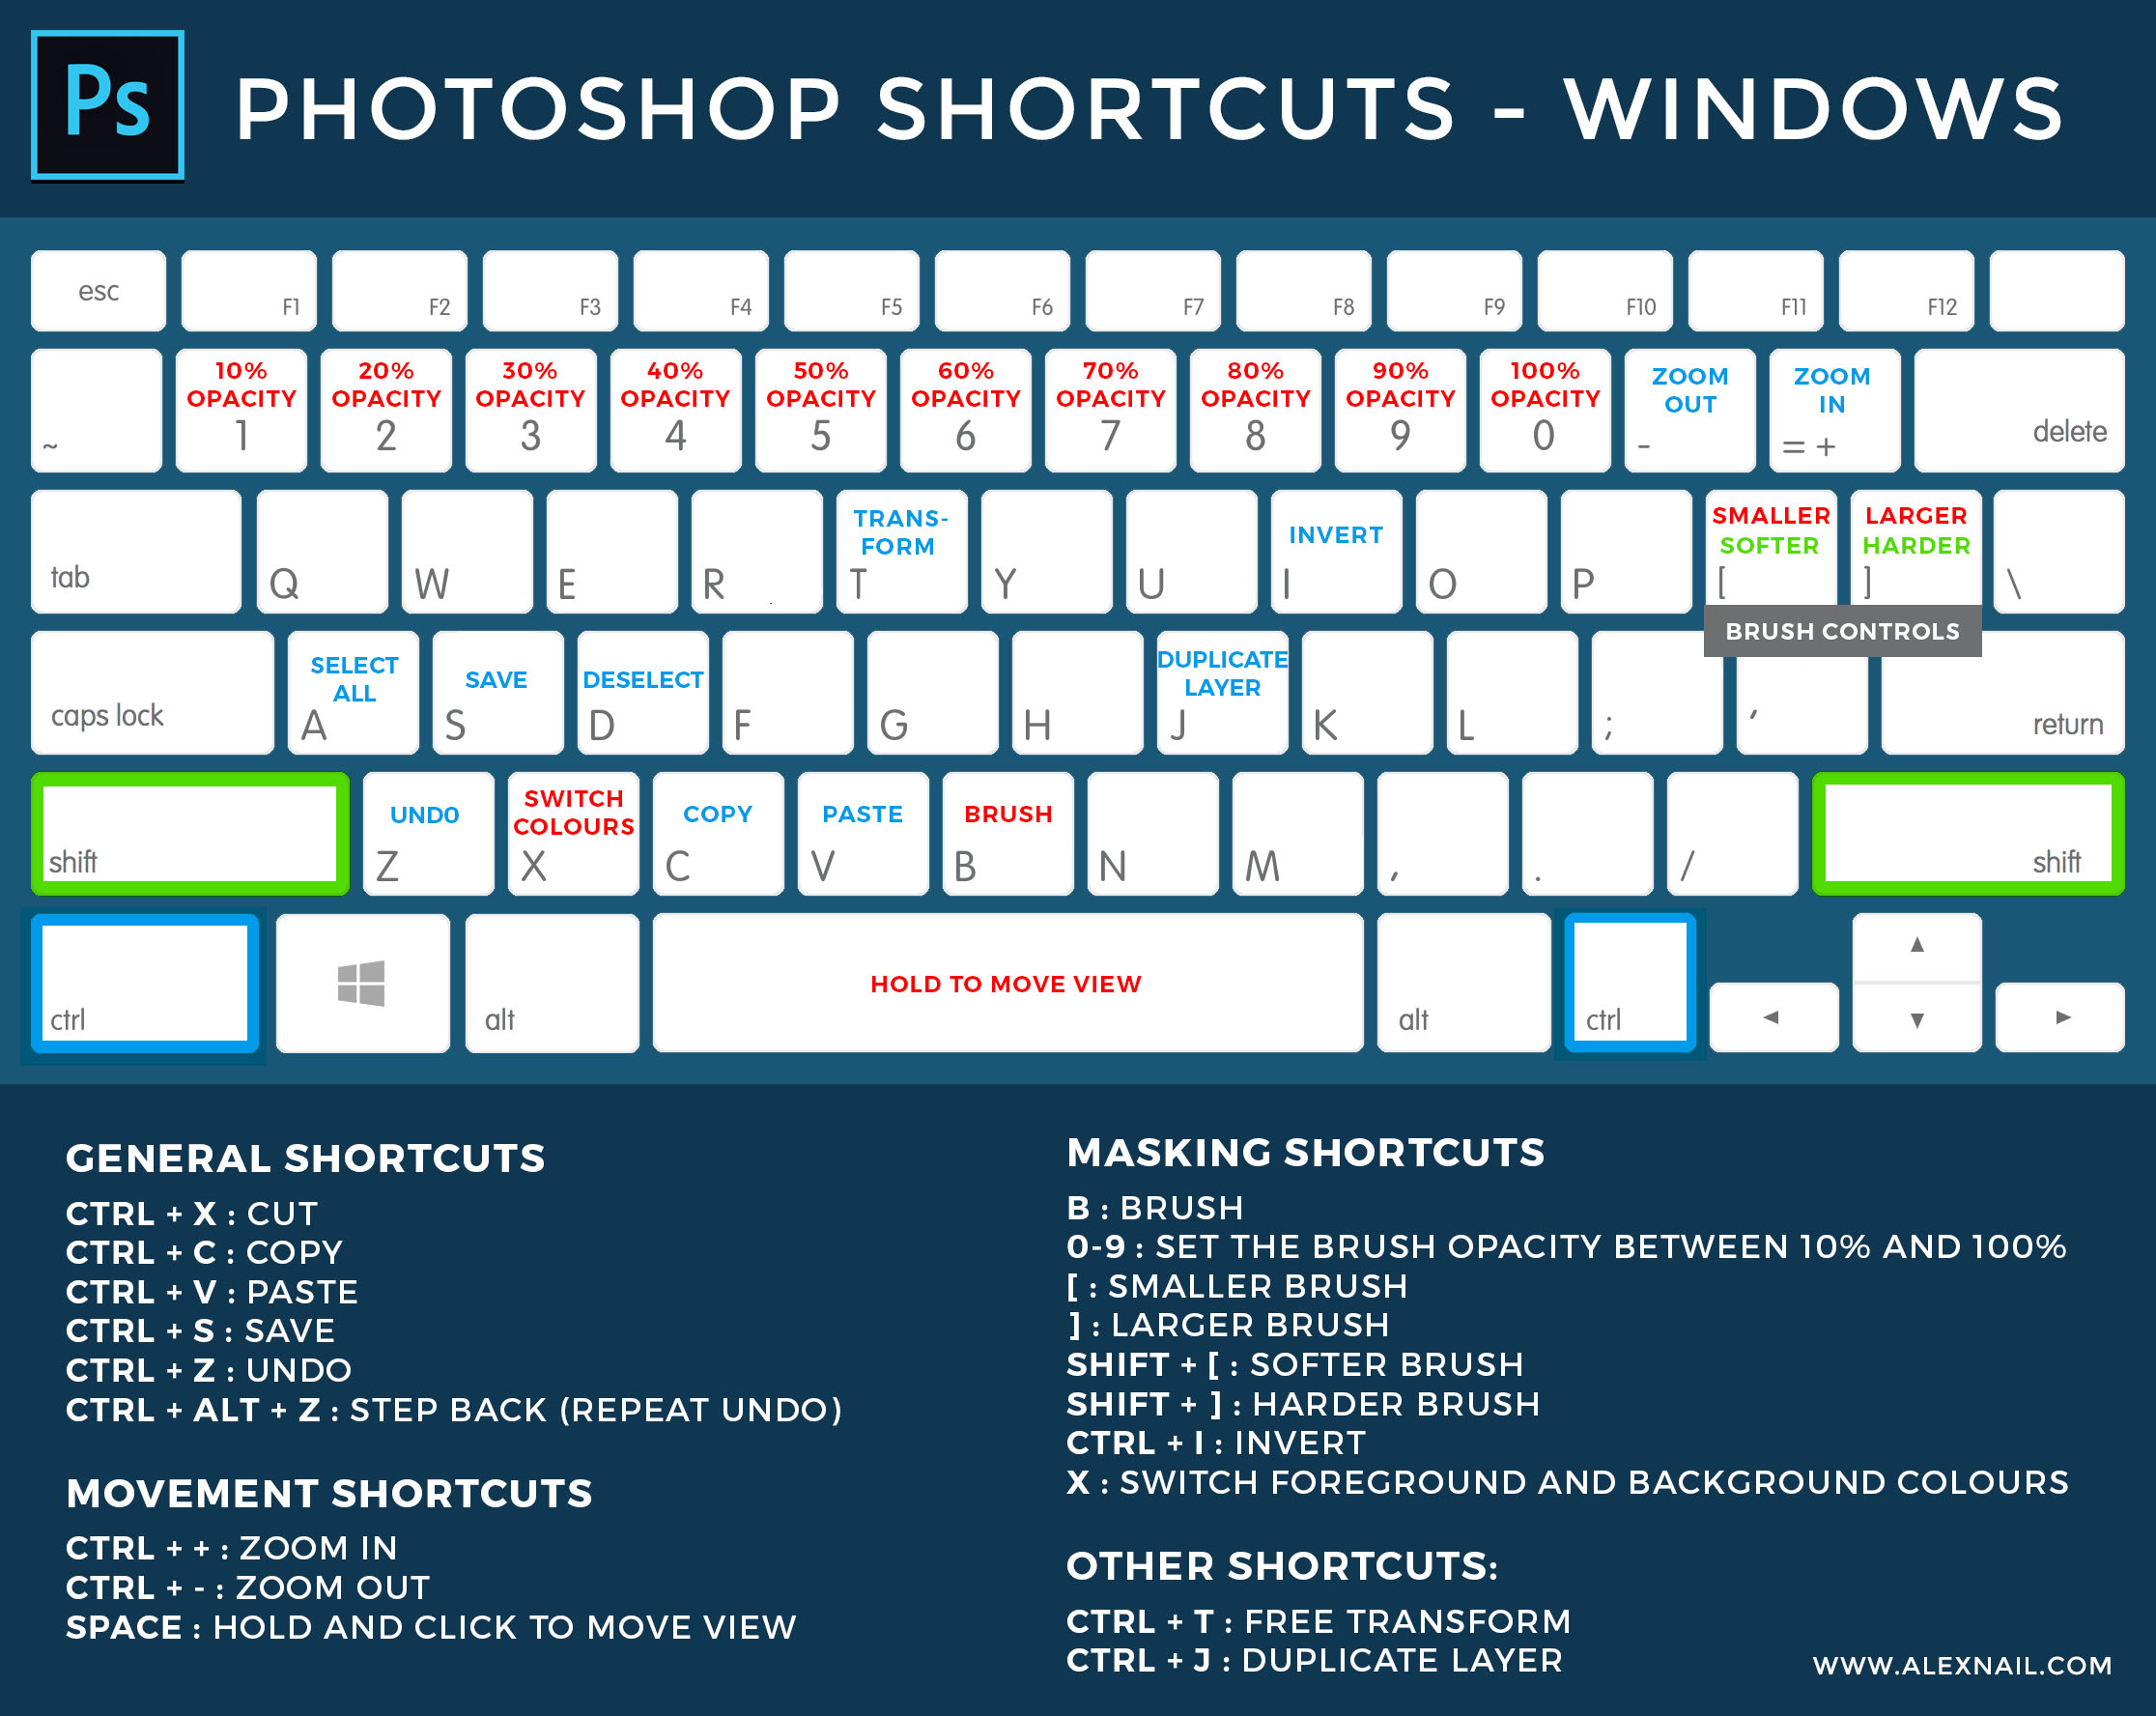 Photoshop shortcuts for landscape photographers landscape photoshop shortcuts for windows click to open full res image ccuart Image collections